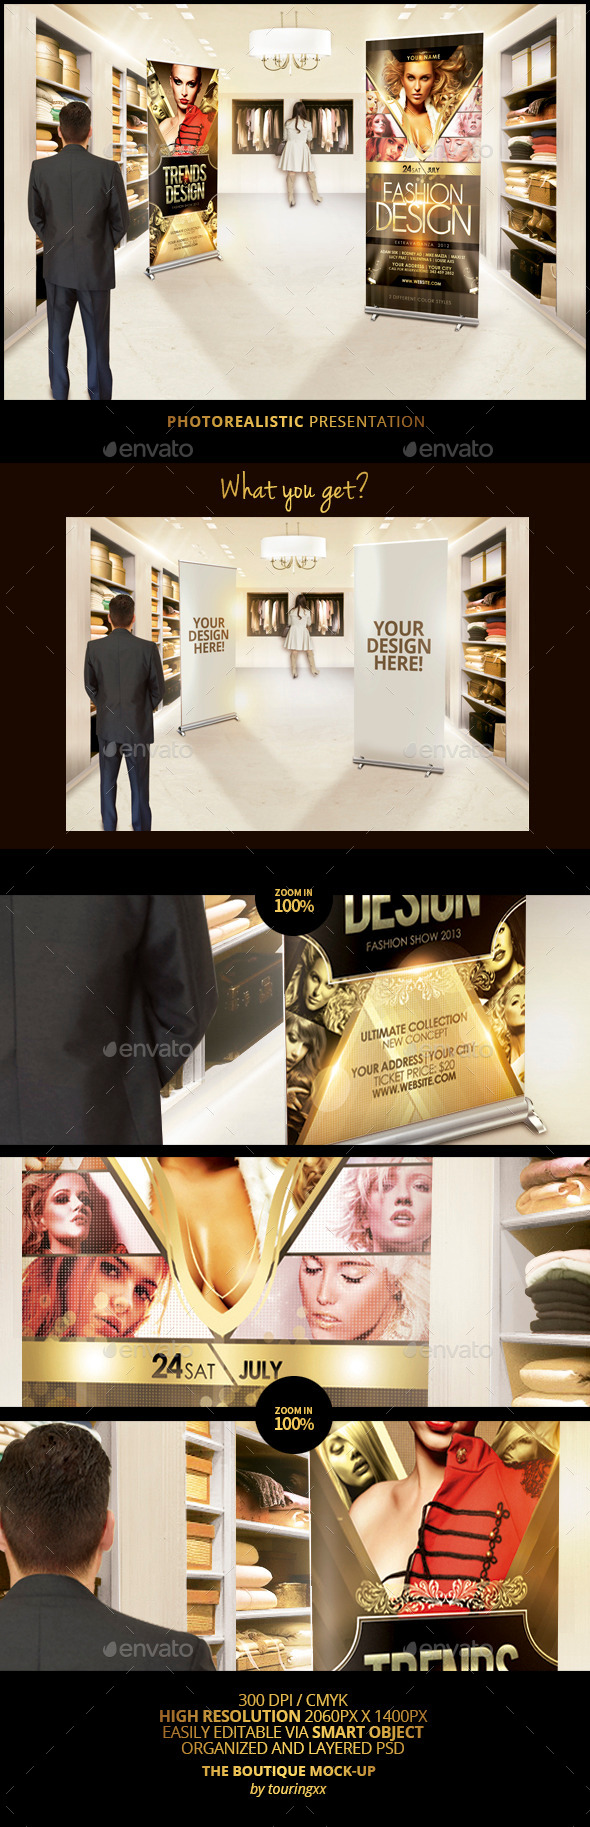 GraphicRiver The Boutique Mock-Up Template 8824397